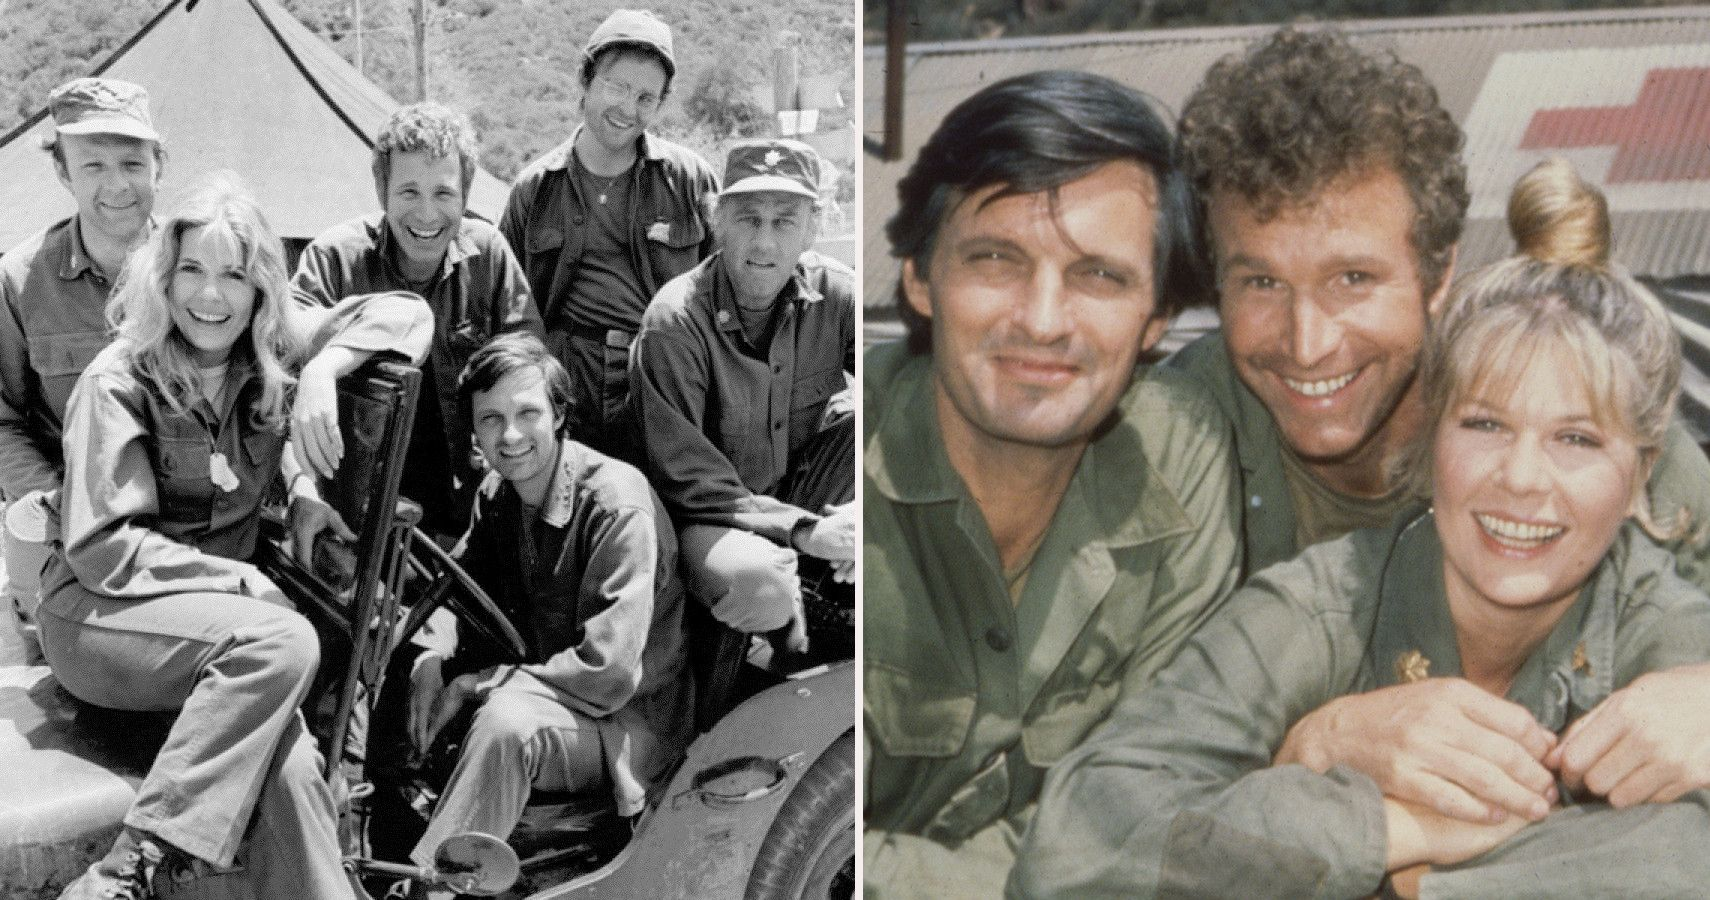 10 Quotes From M*A*S*H That Are Still Hilarious Today